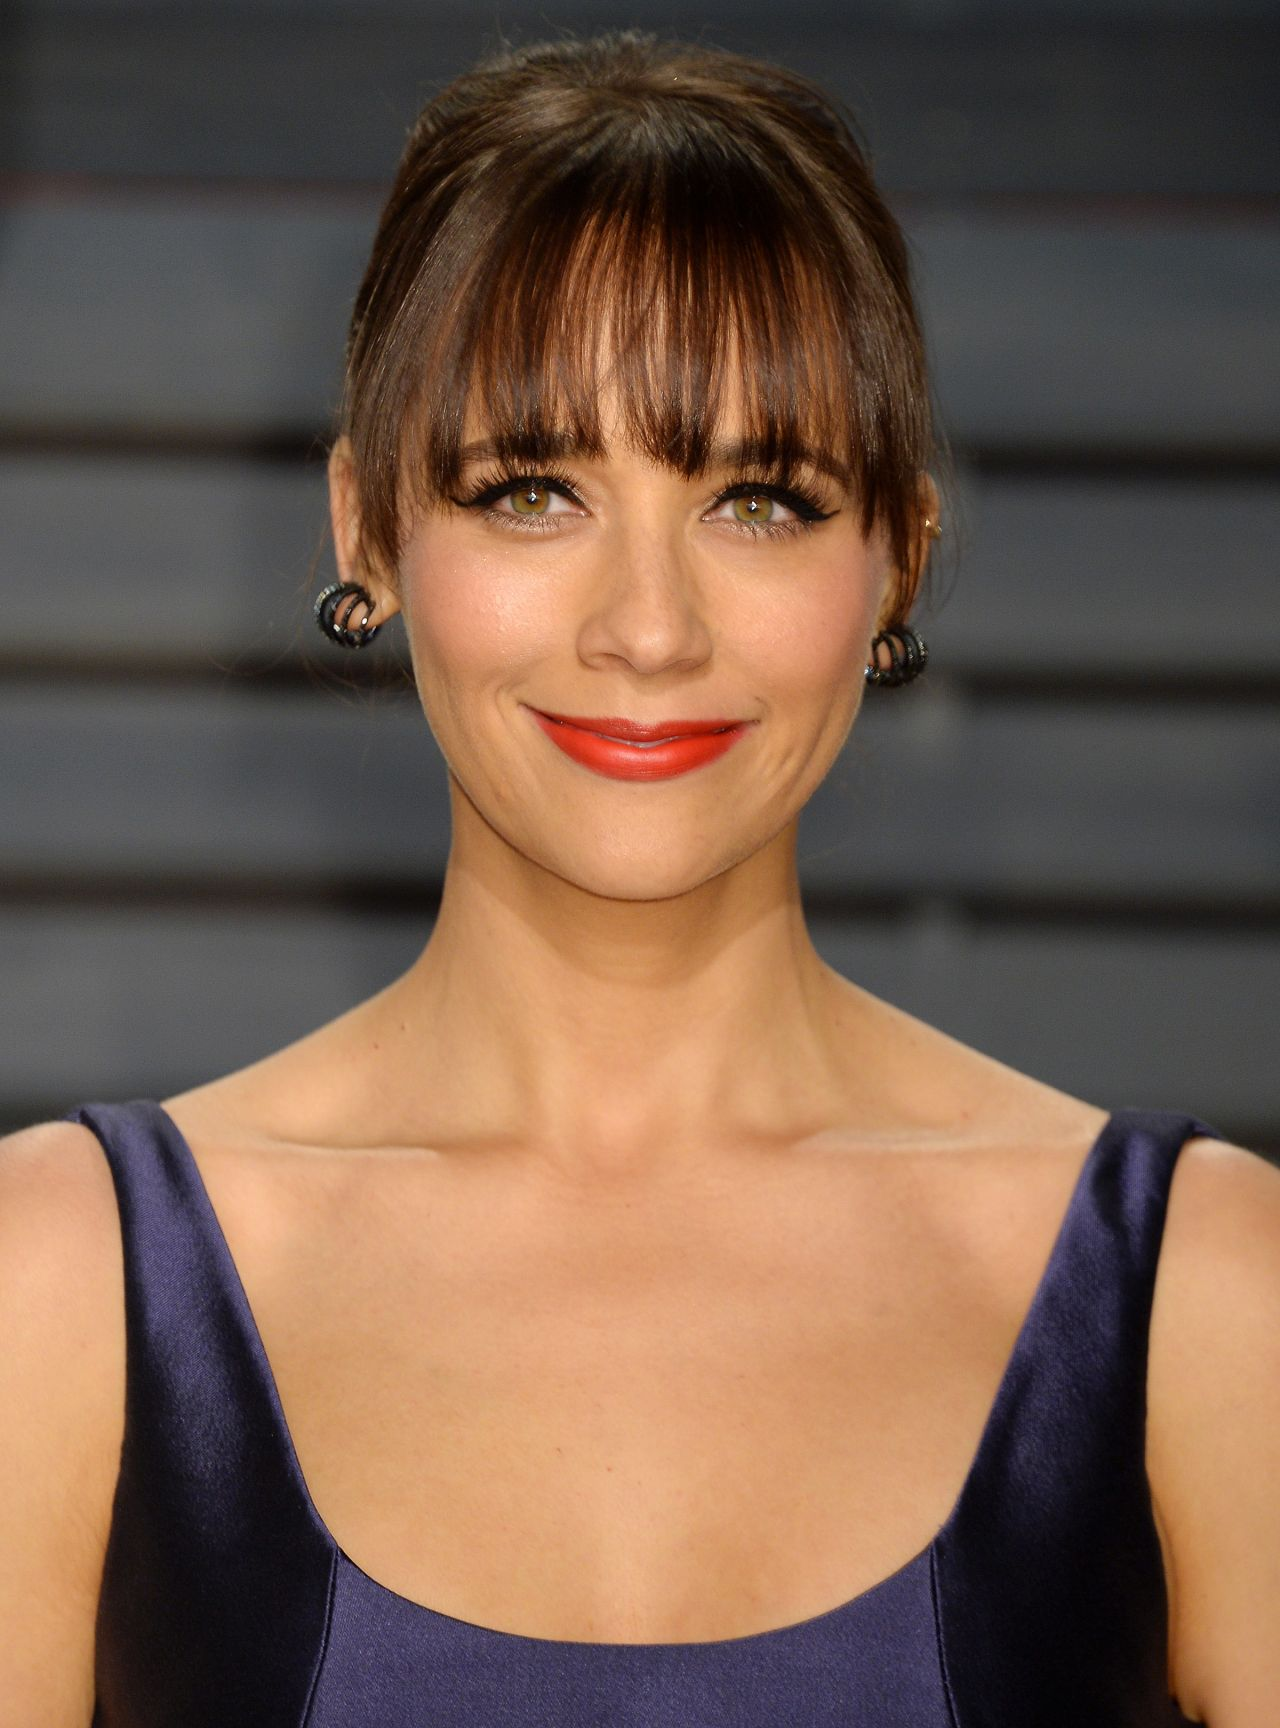 rashida-jones-at-vanity-fair-oscar-2017-party-in-los-angeles-1.jpg